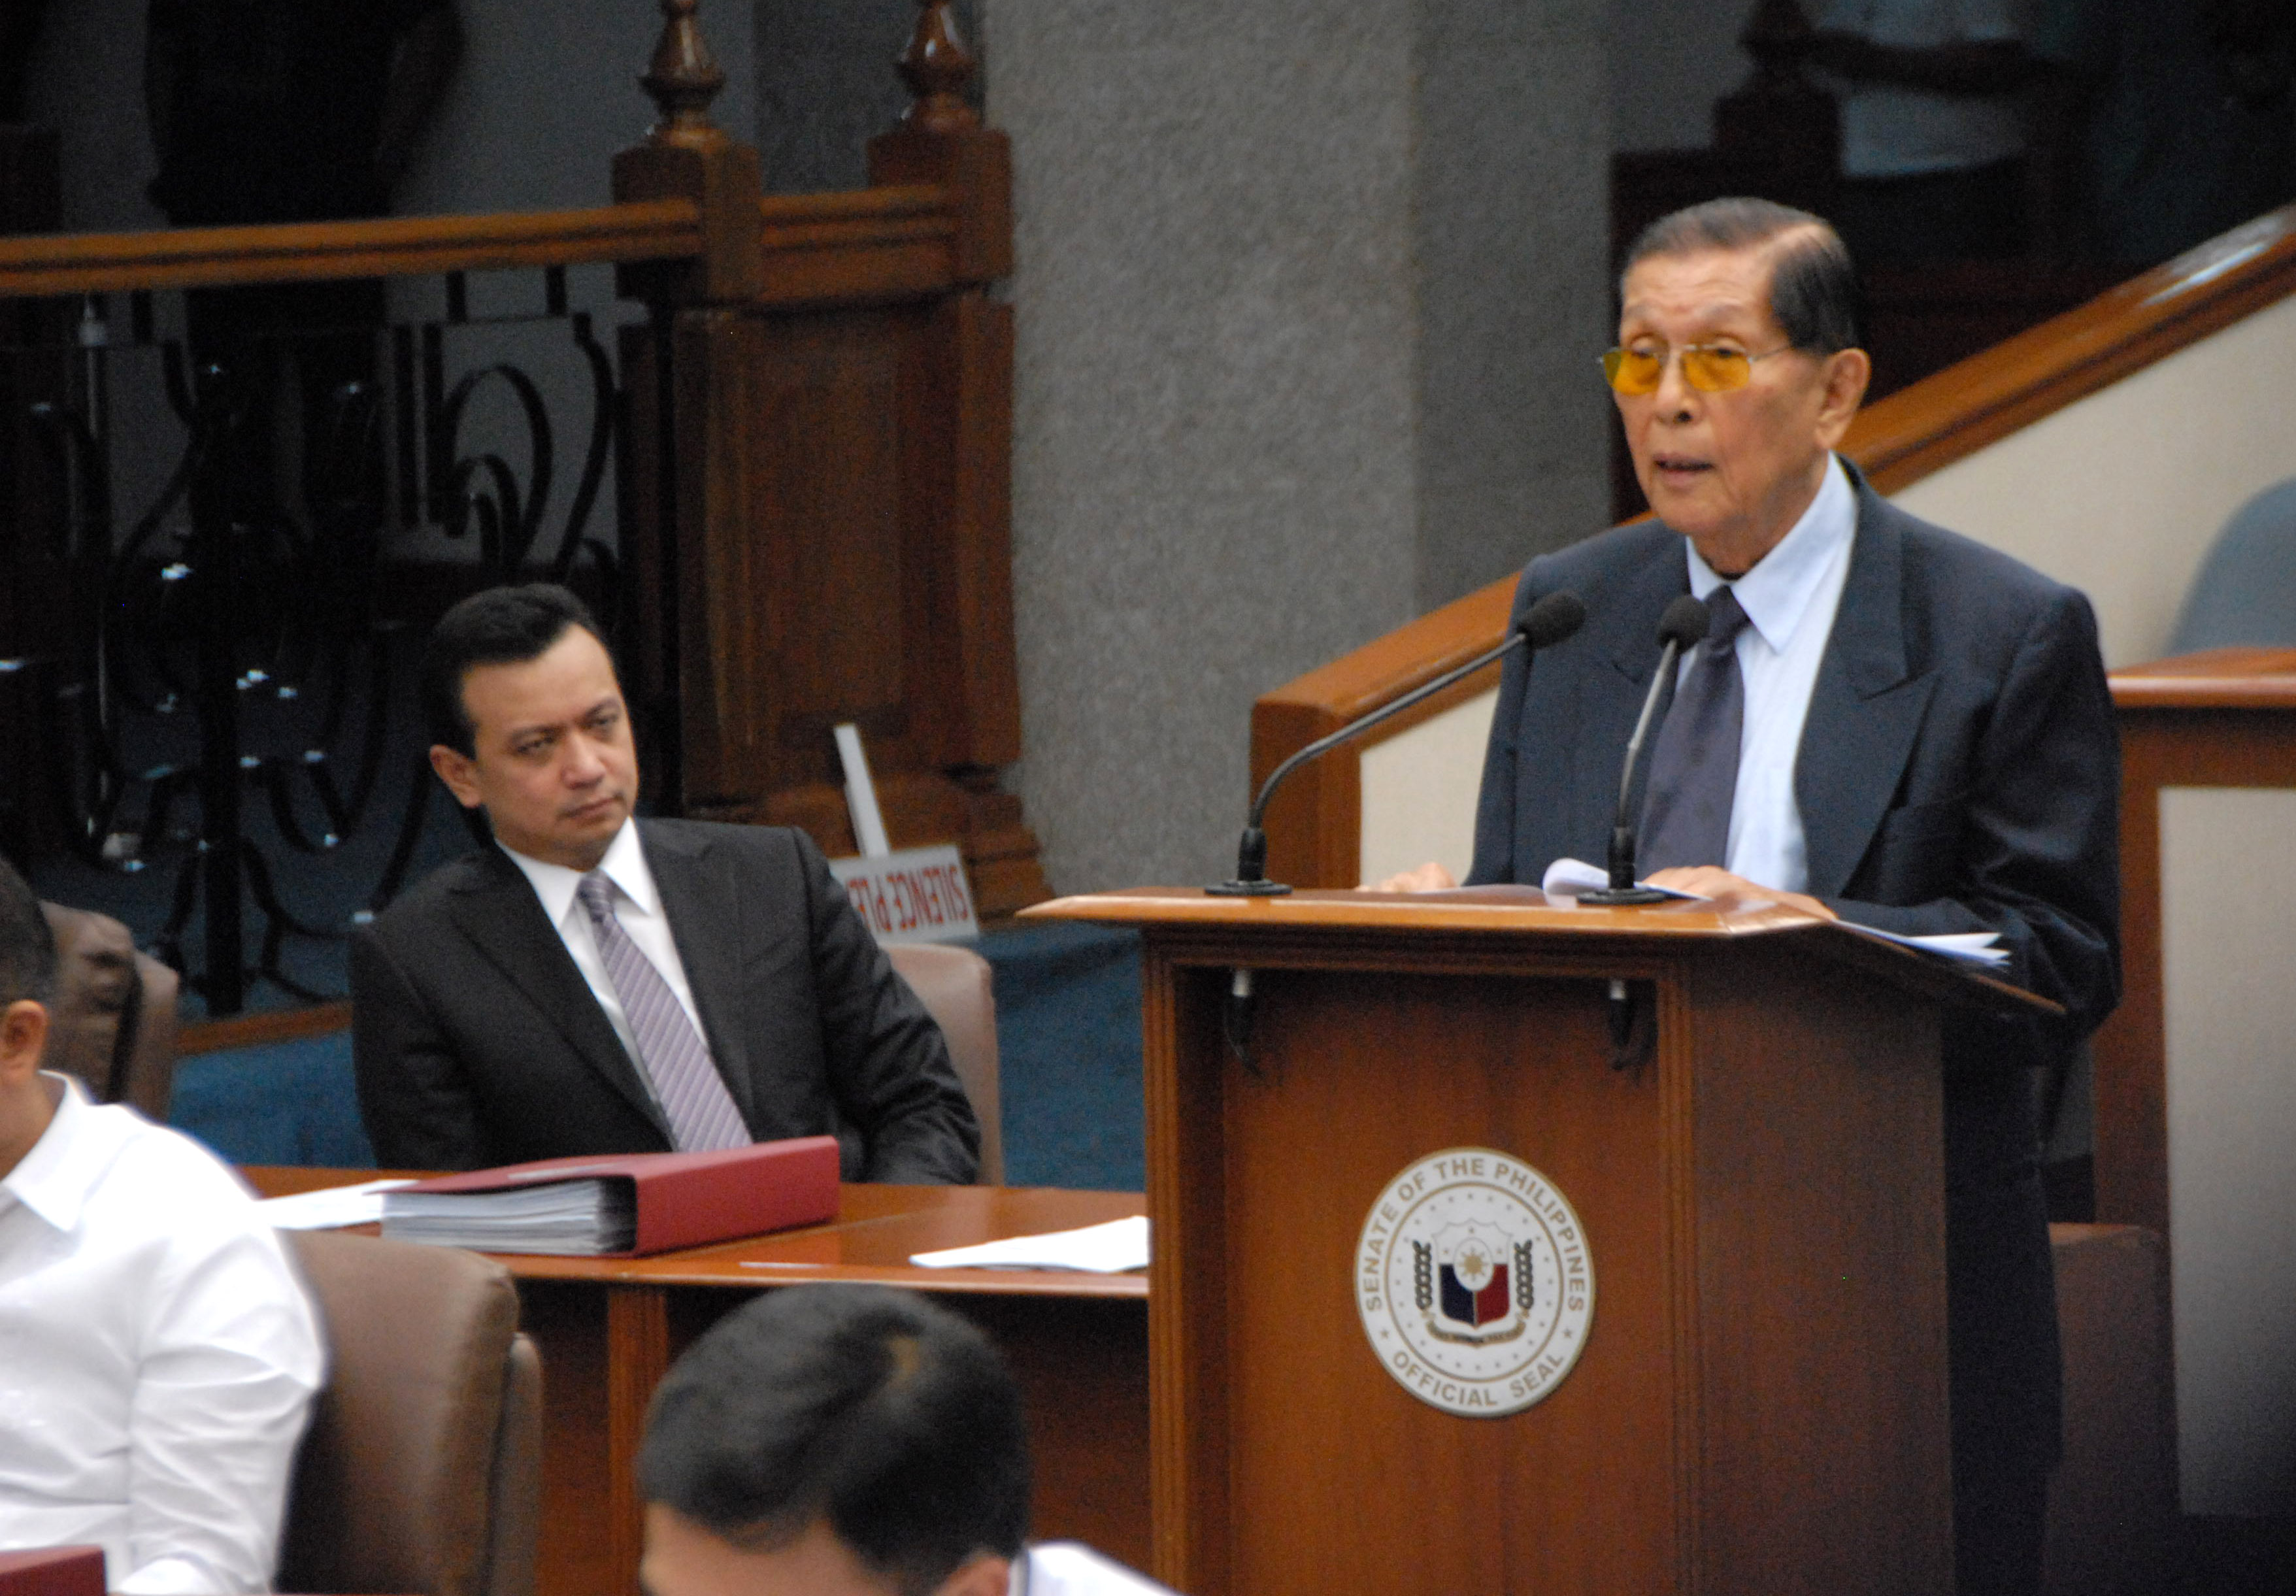 """Minority Floor Leader Juan Ponce Enrile inquires about the status of the committee report on the Mamasapano incident during Wednesday's plenary proceedings. """"It is not only for the courage, the valor, and the sacrifices of the fallen and surviving SAF members in that ghastly and brutal carnage to be placed in the annals of this august Chamber, but also to demonstrate to the general public and to let the people know how their Senate dealt with the complex issues that were discovered and brought to light during the Senate investigation,"""" Enrile said in his privilege speech. (Photo by Joe Arazas / 07 October 2015)"""